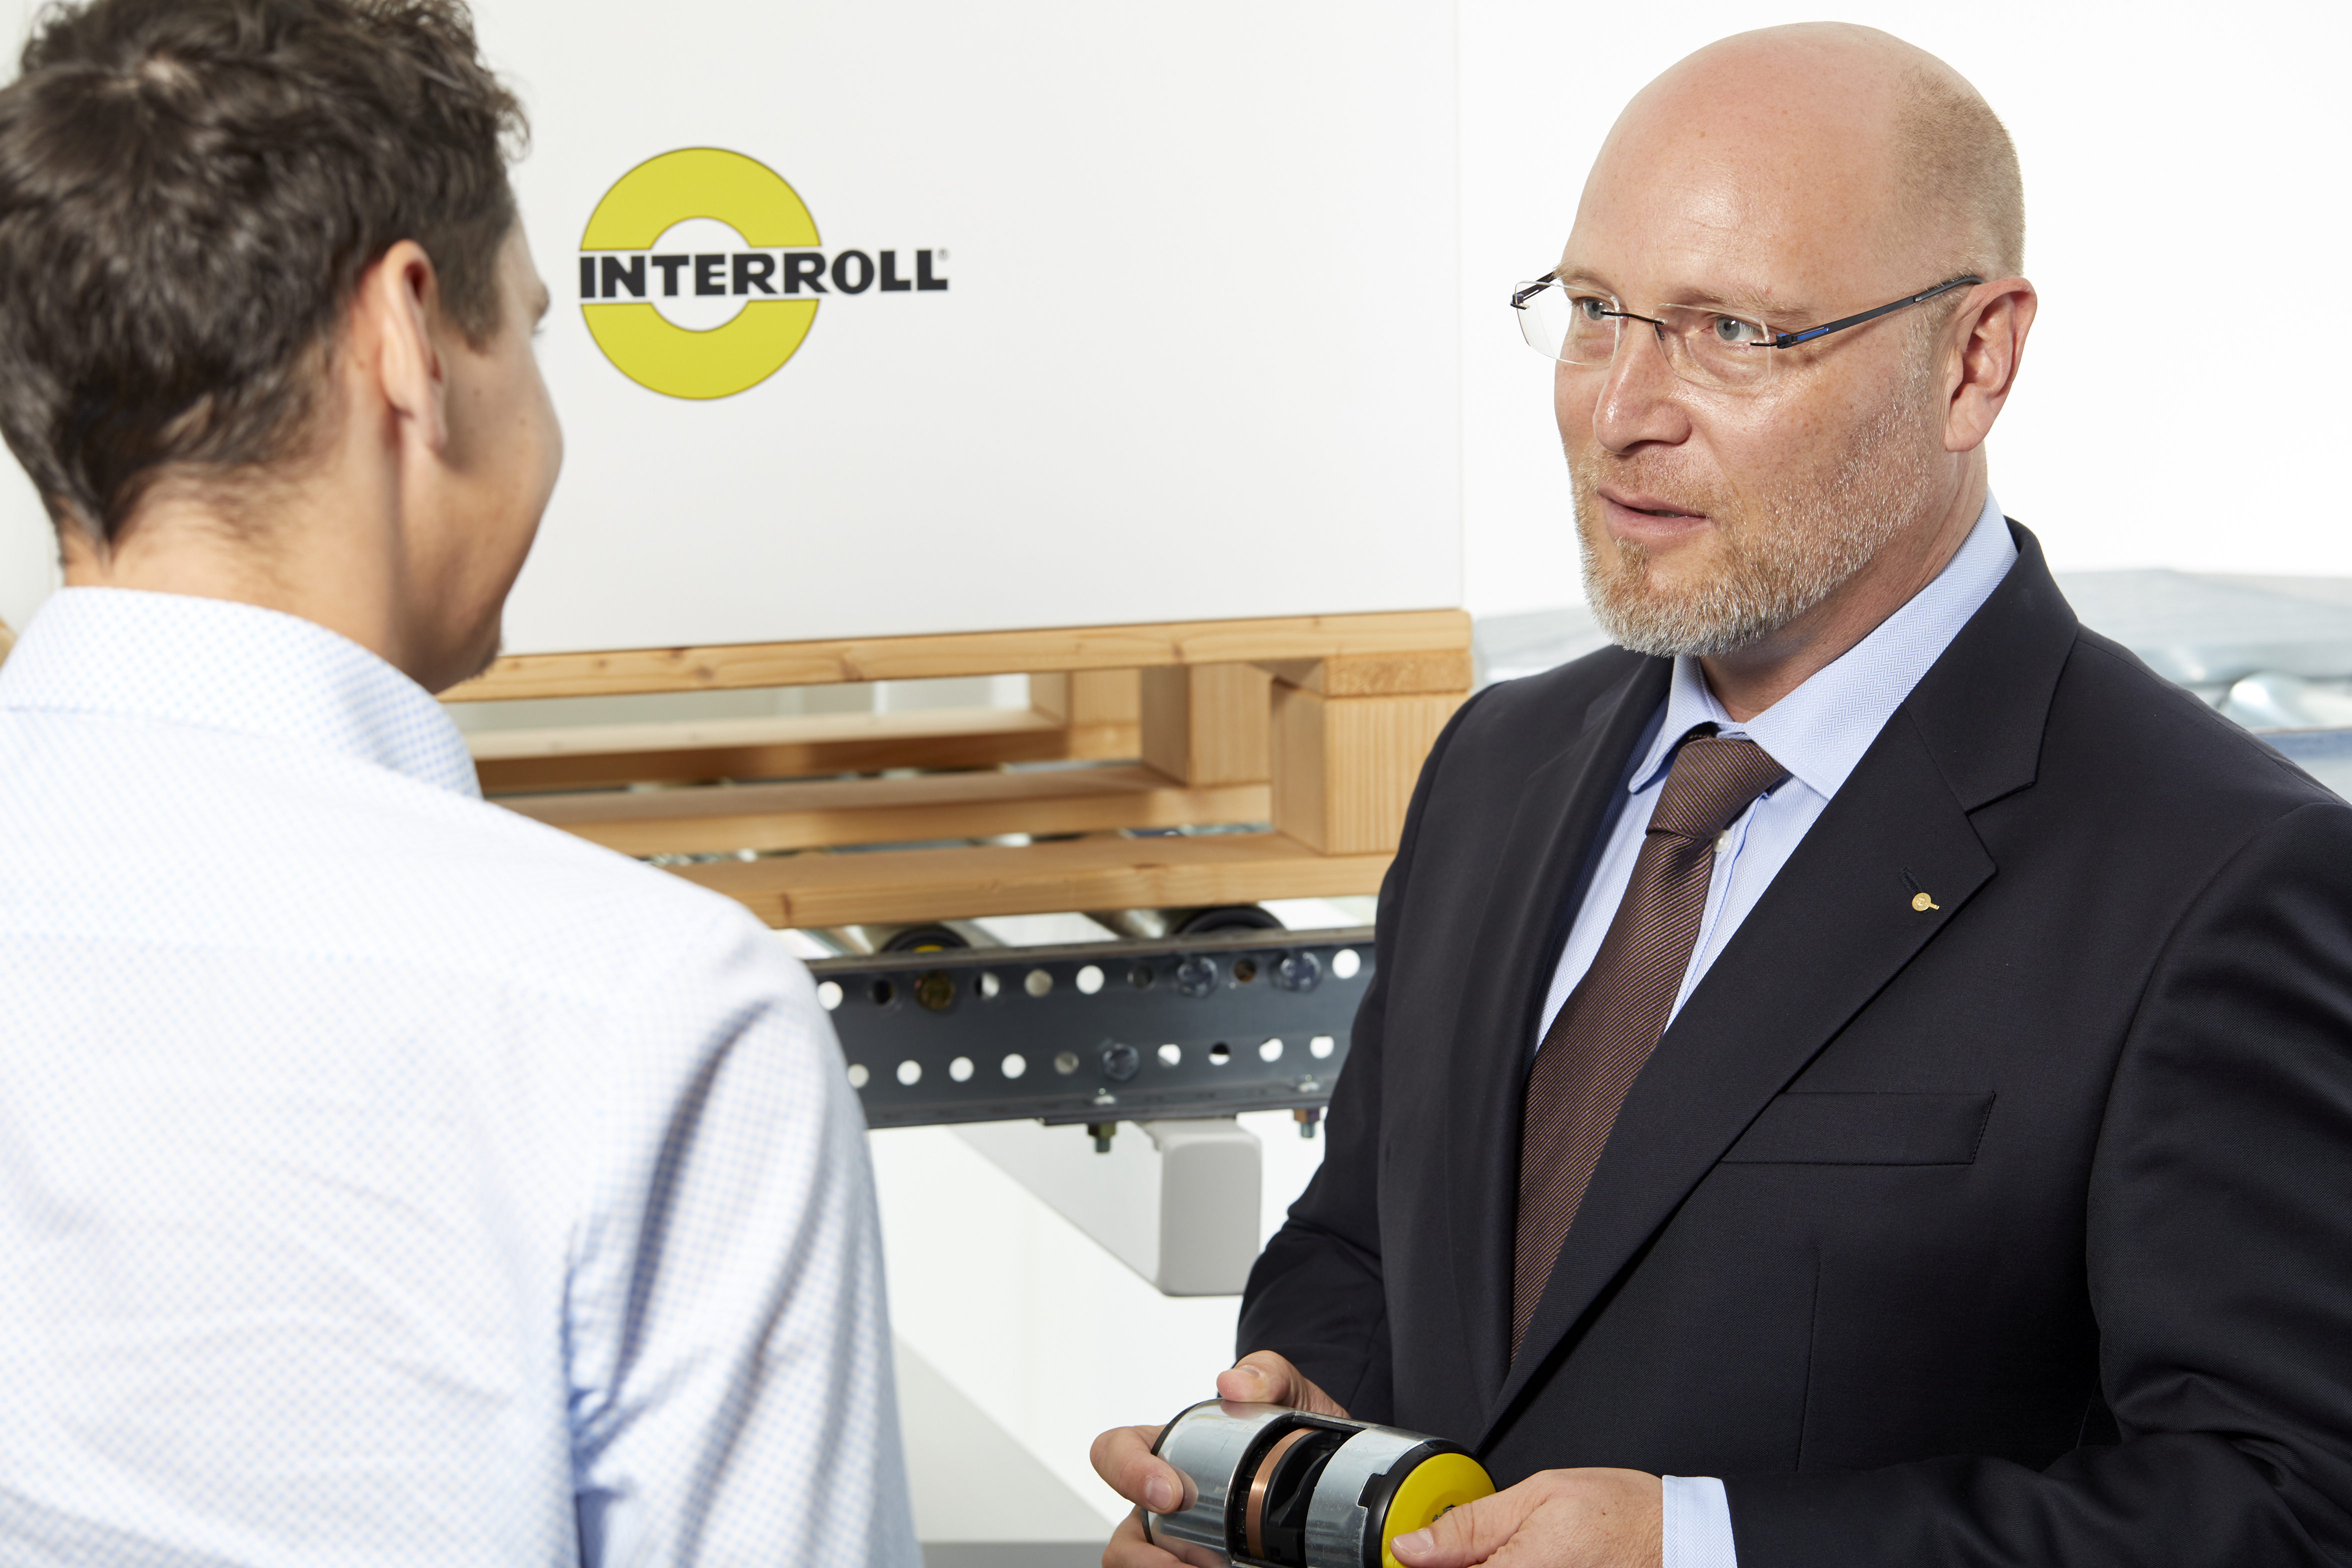 Jörg Mandelatz, Managing Director at Interroll Fördertechnik GmbH in Wermelskirchen